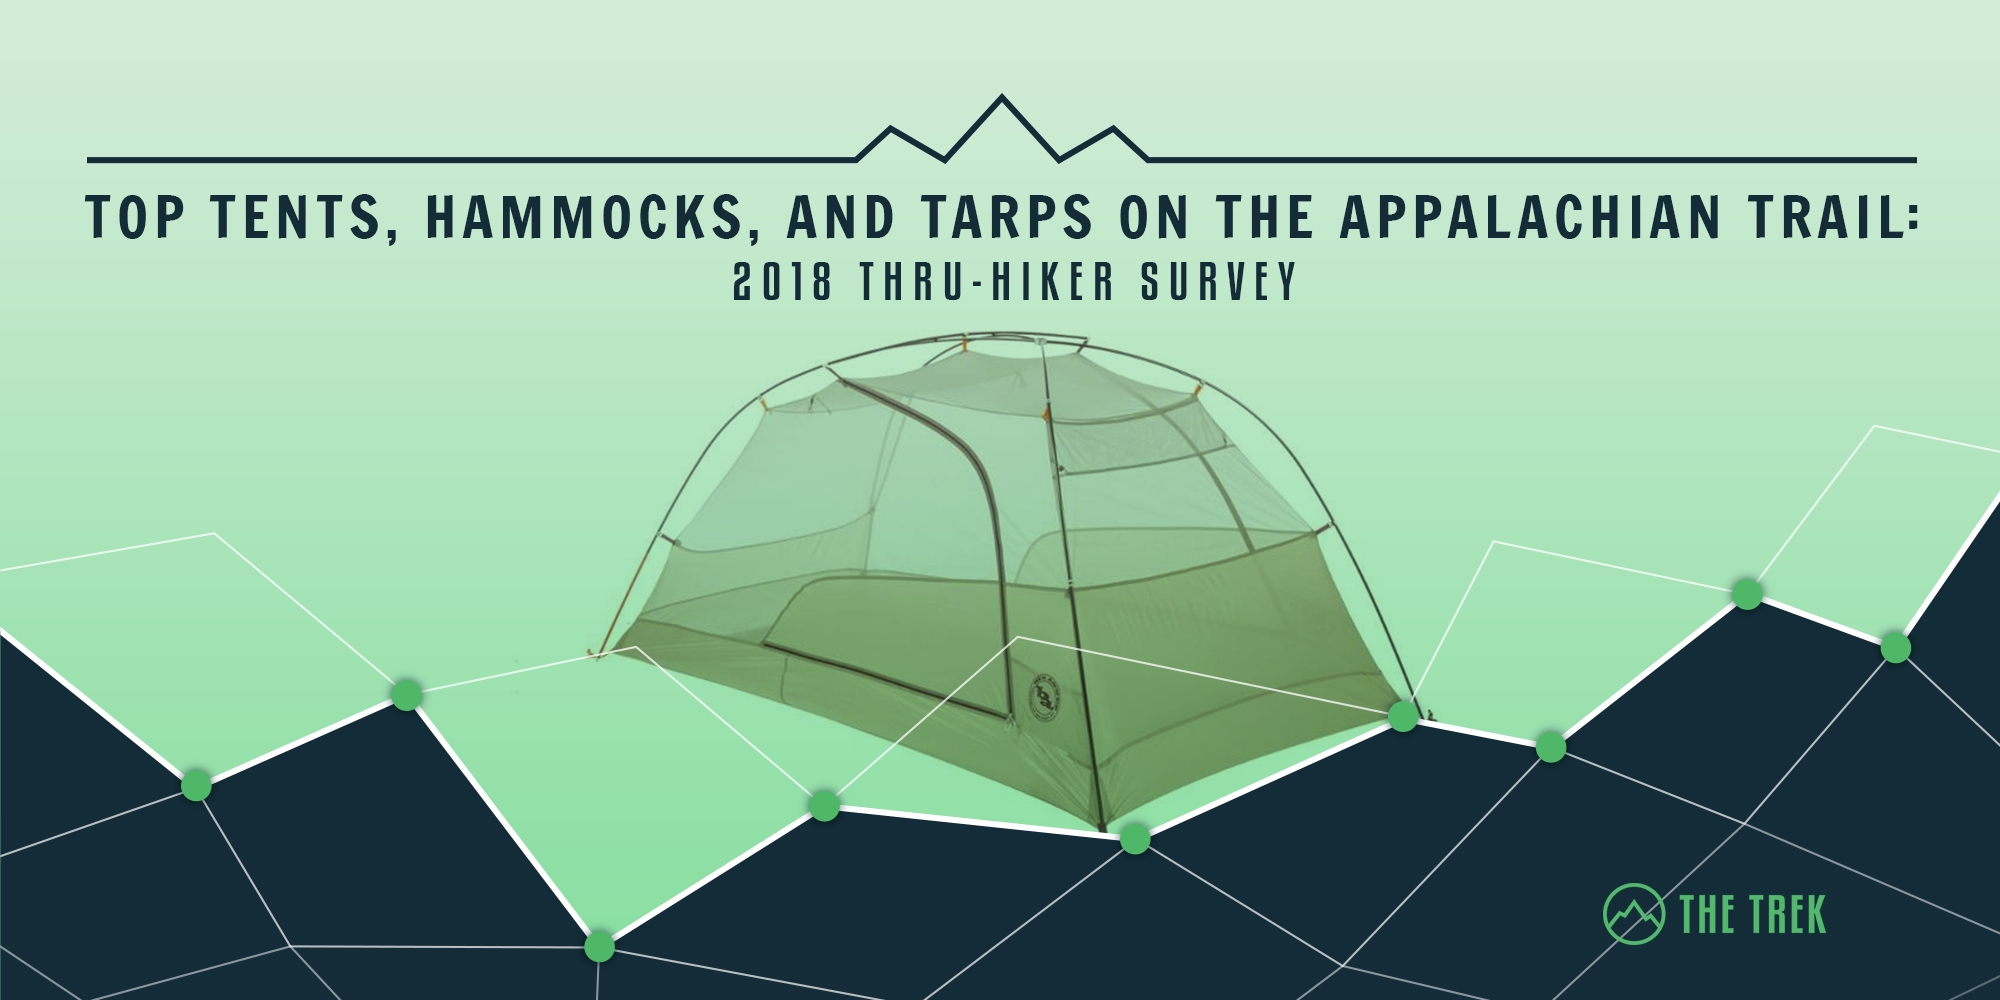 The Top Tents, Hammocks, and Tarps on the Appalachian Trail: 2018 Thru-Hiker Survey